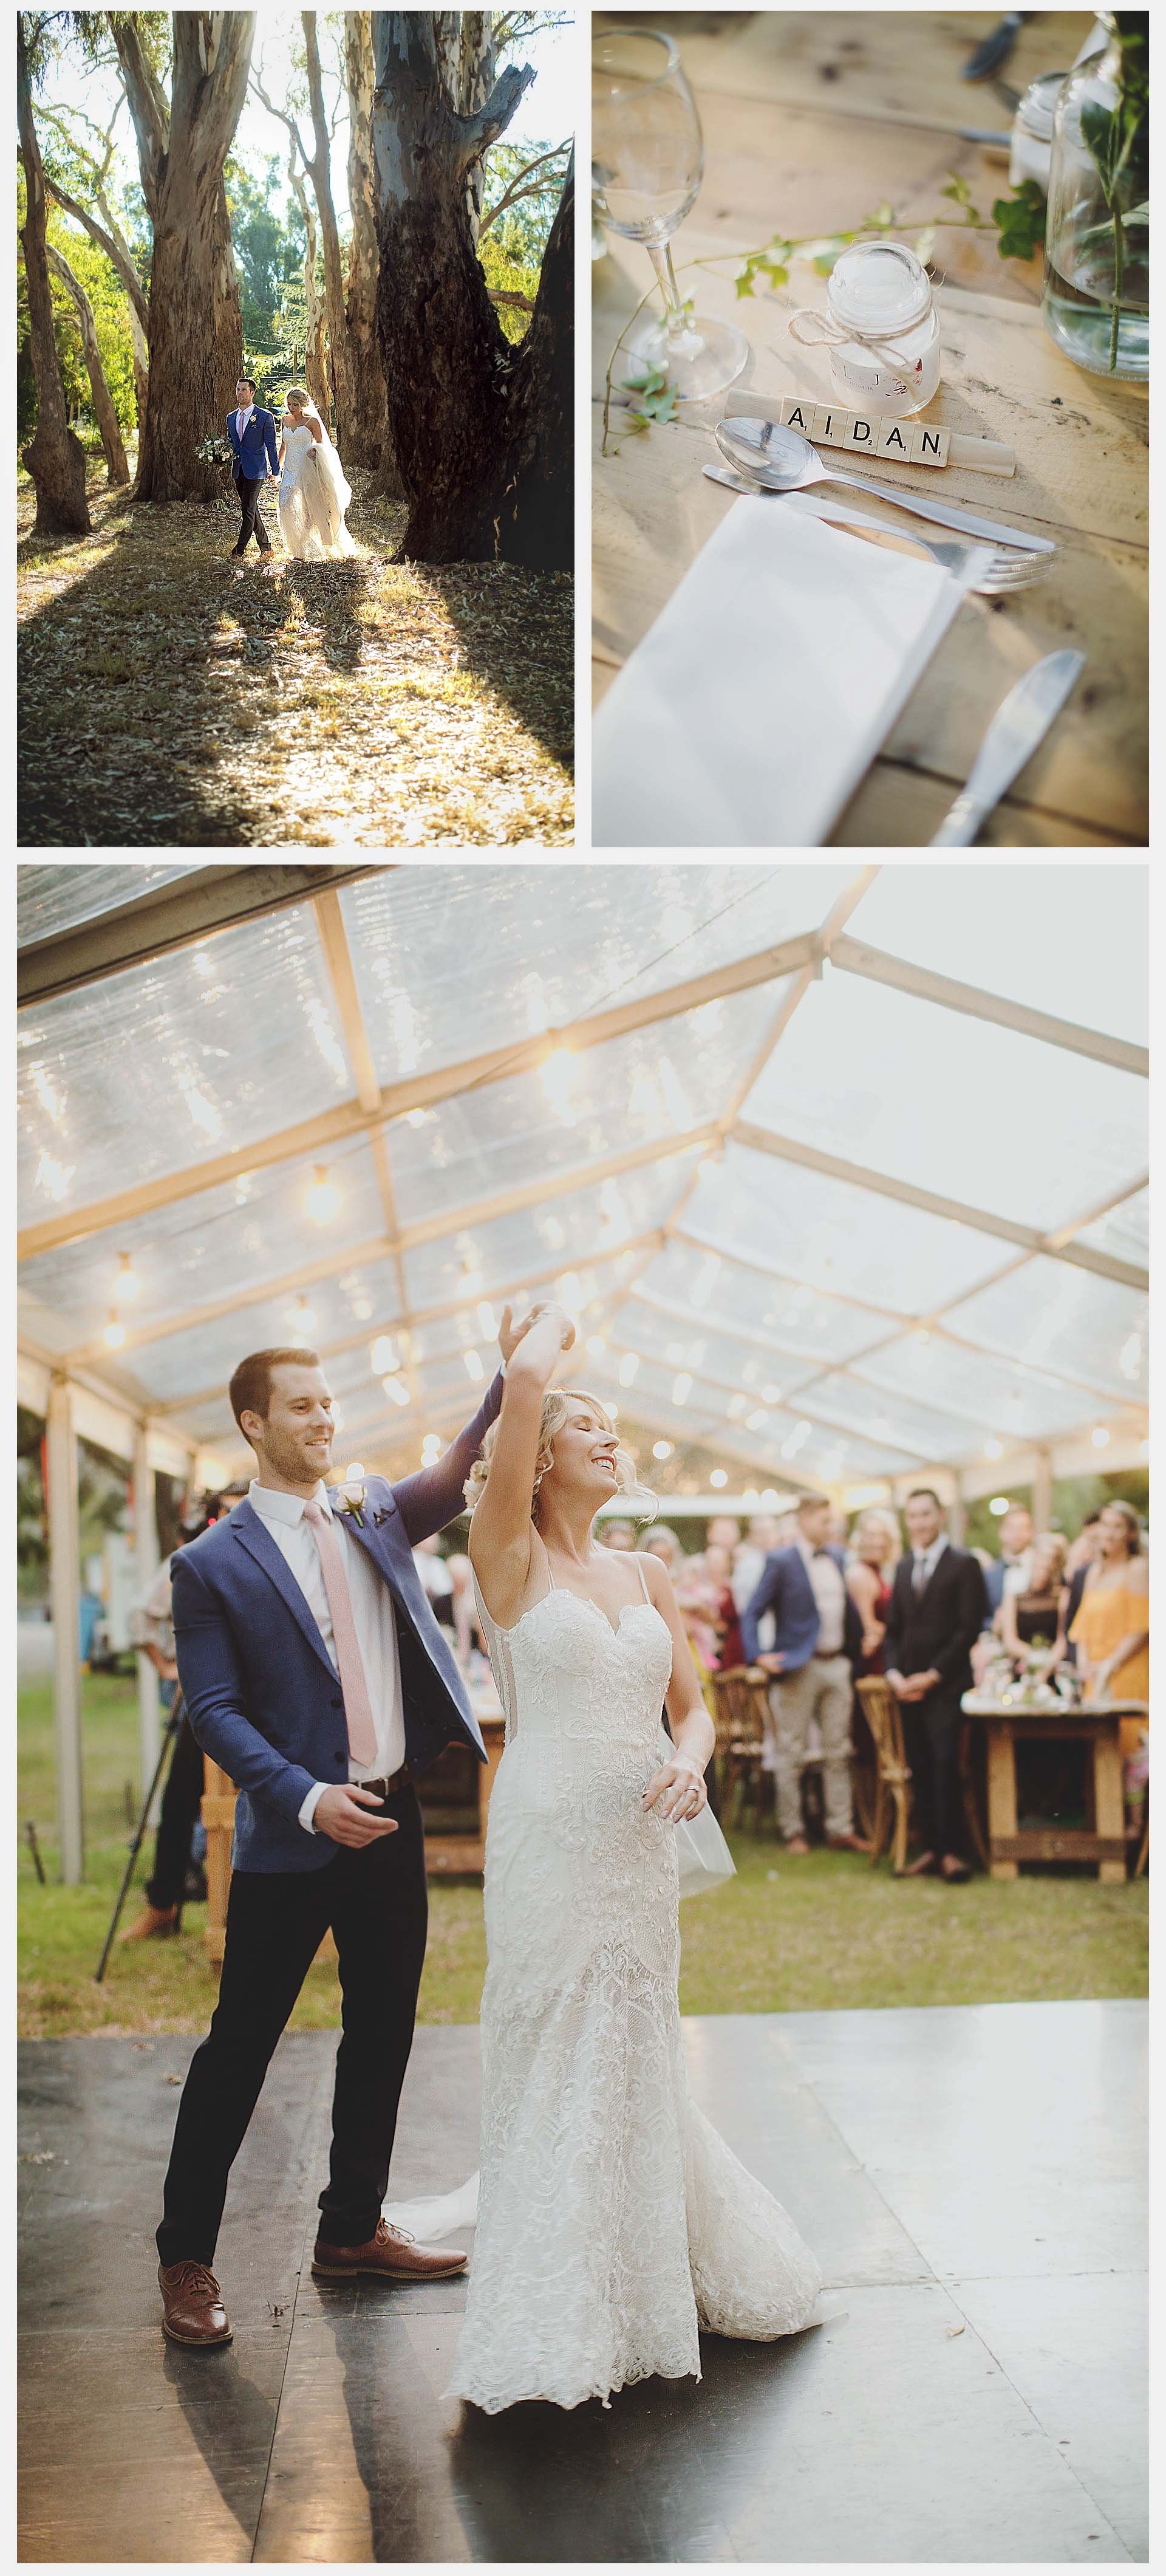 The happy couple have the first dance after the husband and wife in the blessing of the guests and the sunset